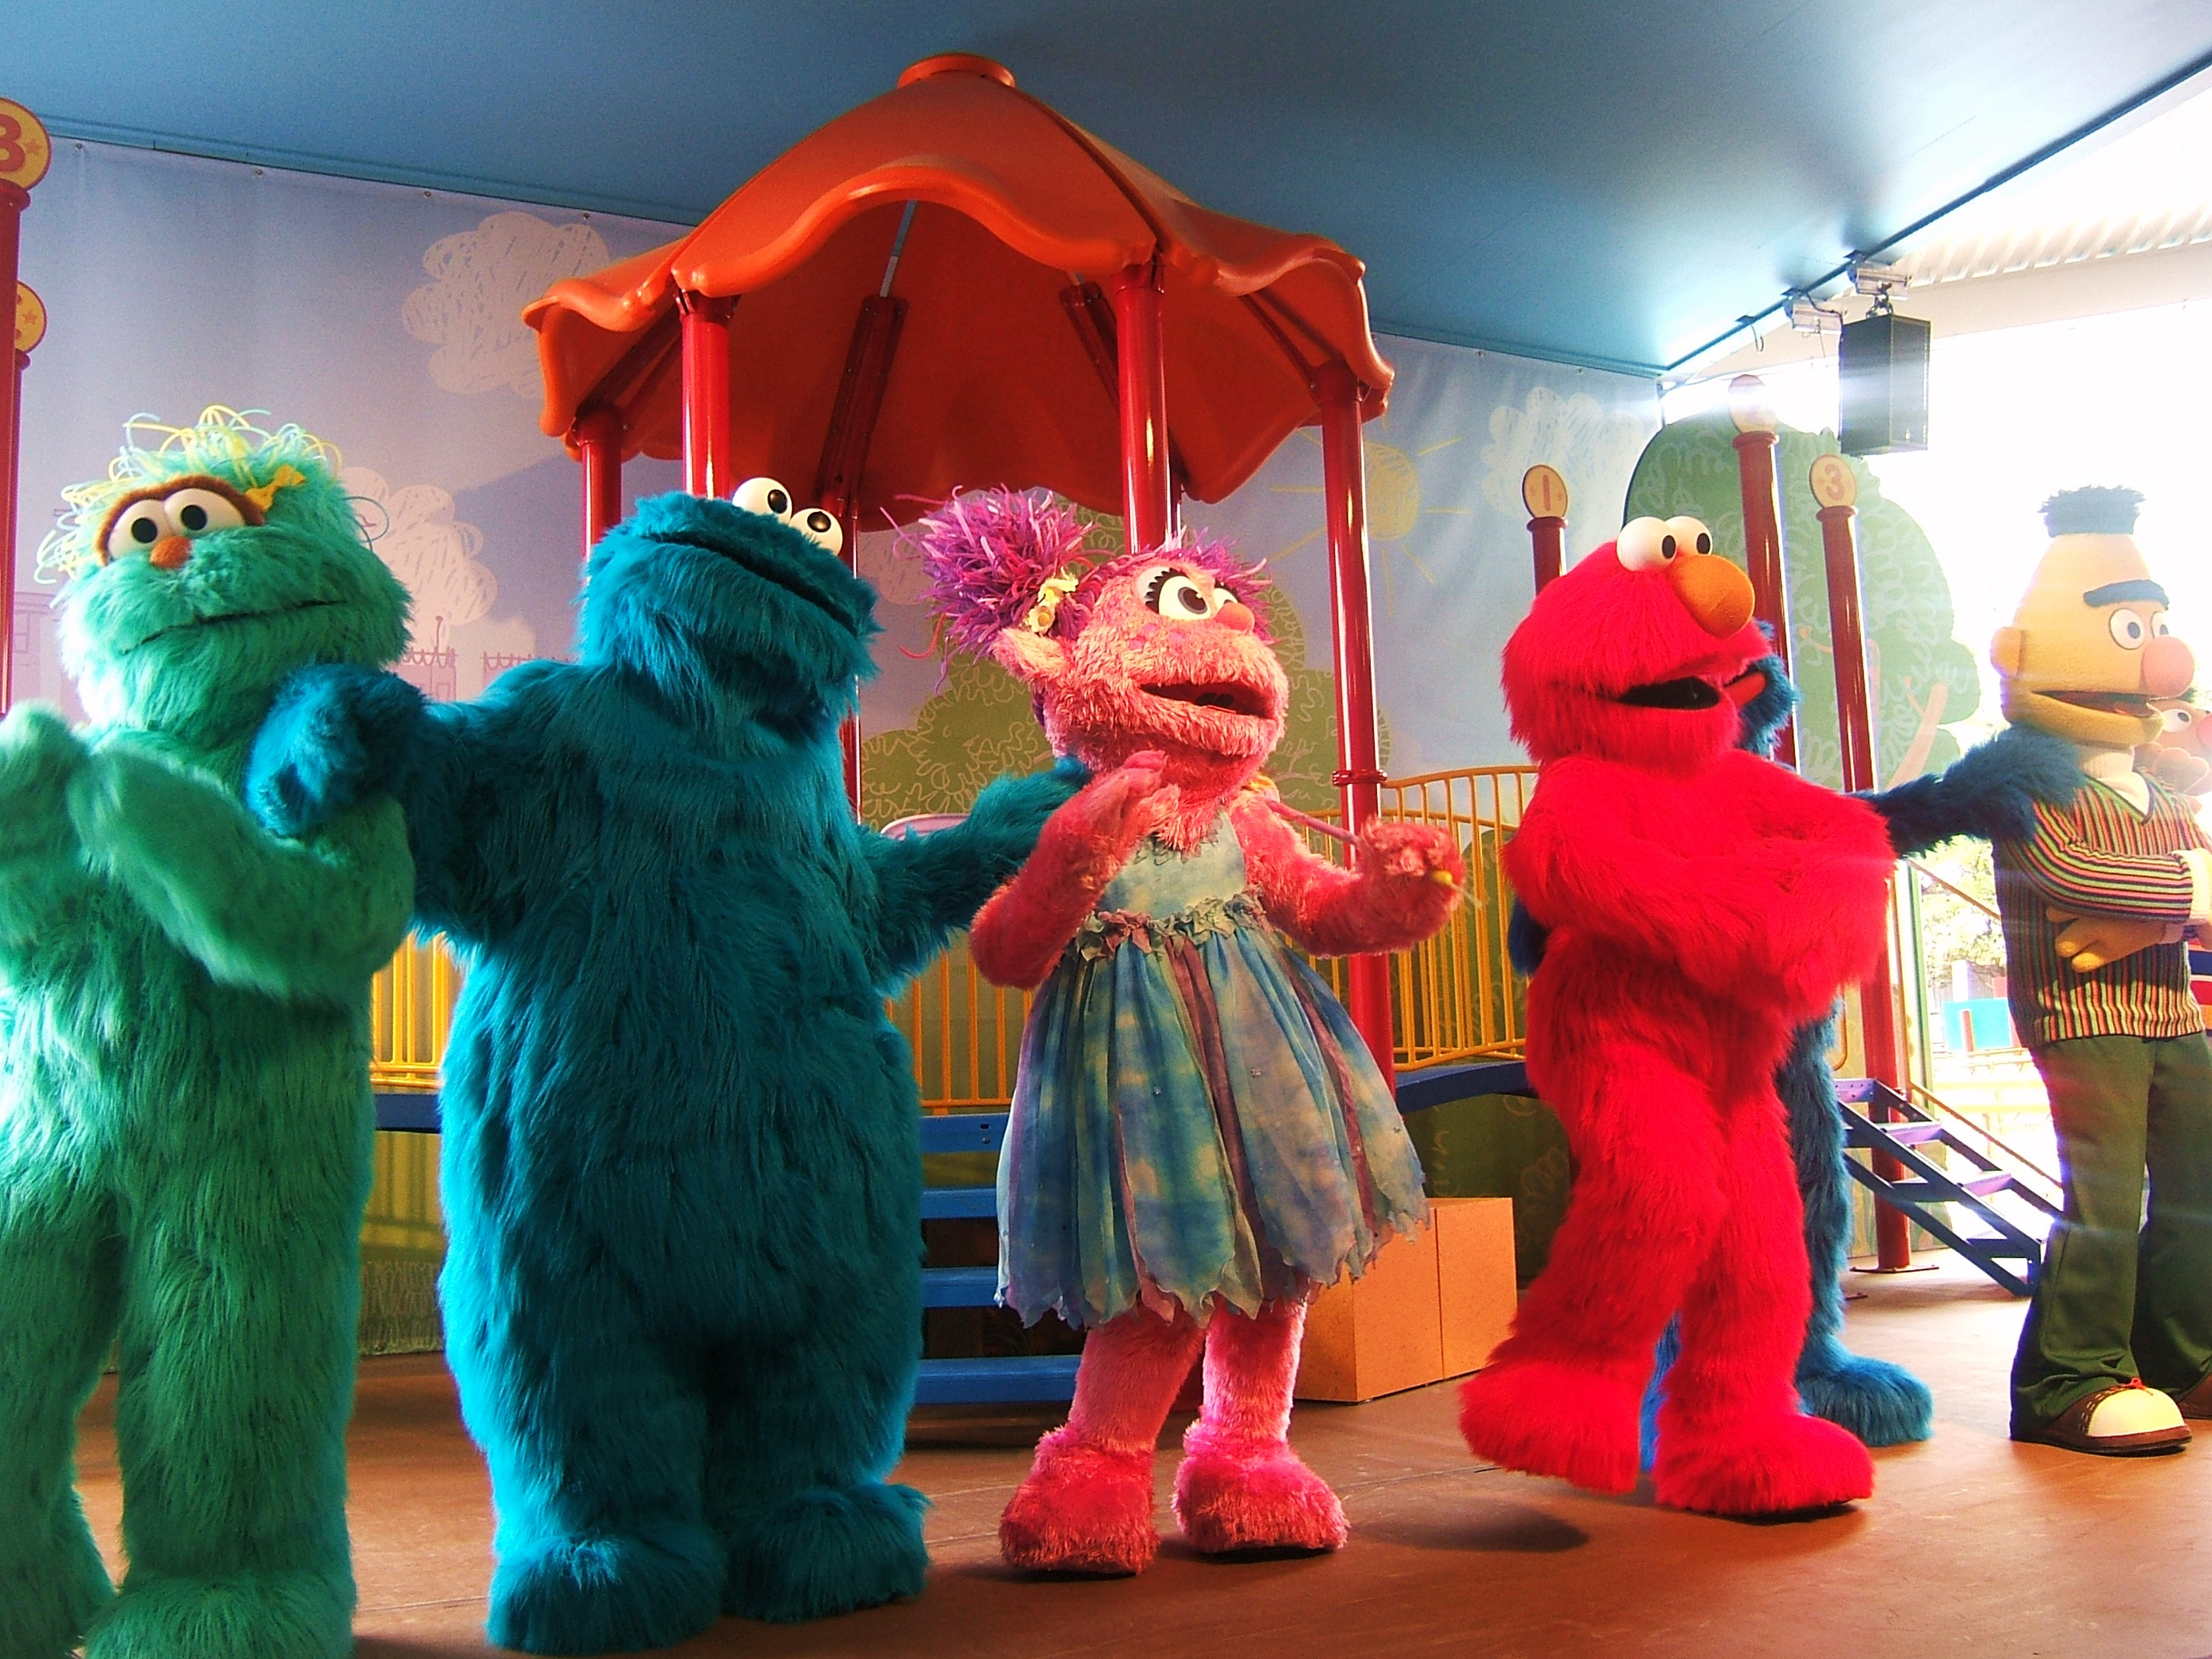 Sesame Place, Has Anyone Been There?